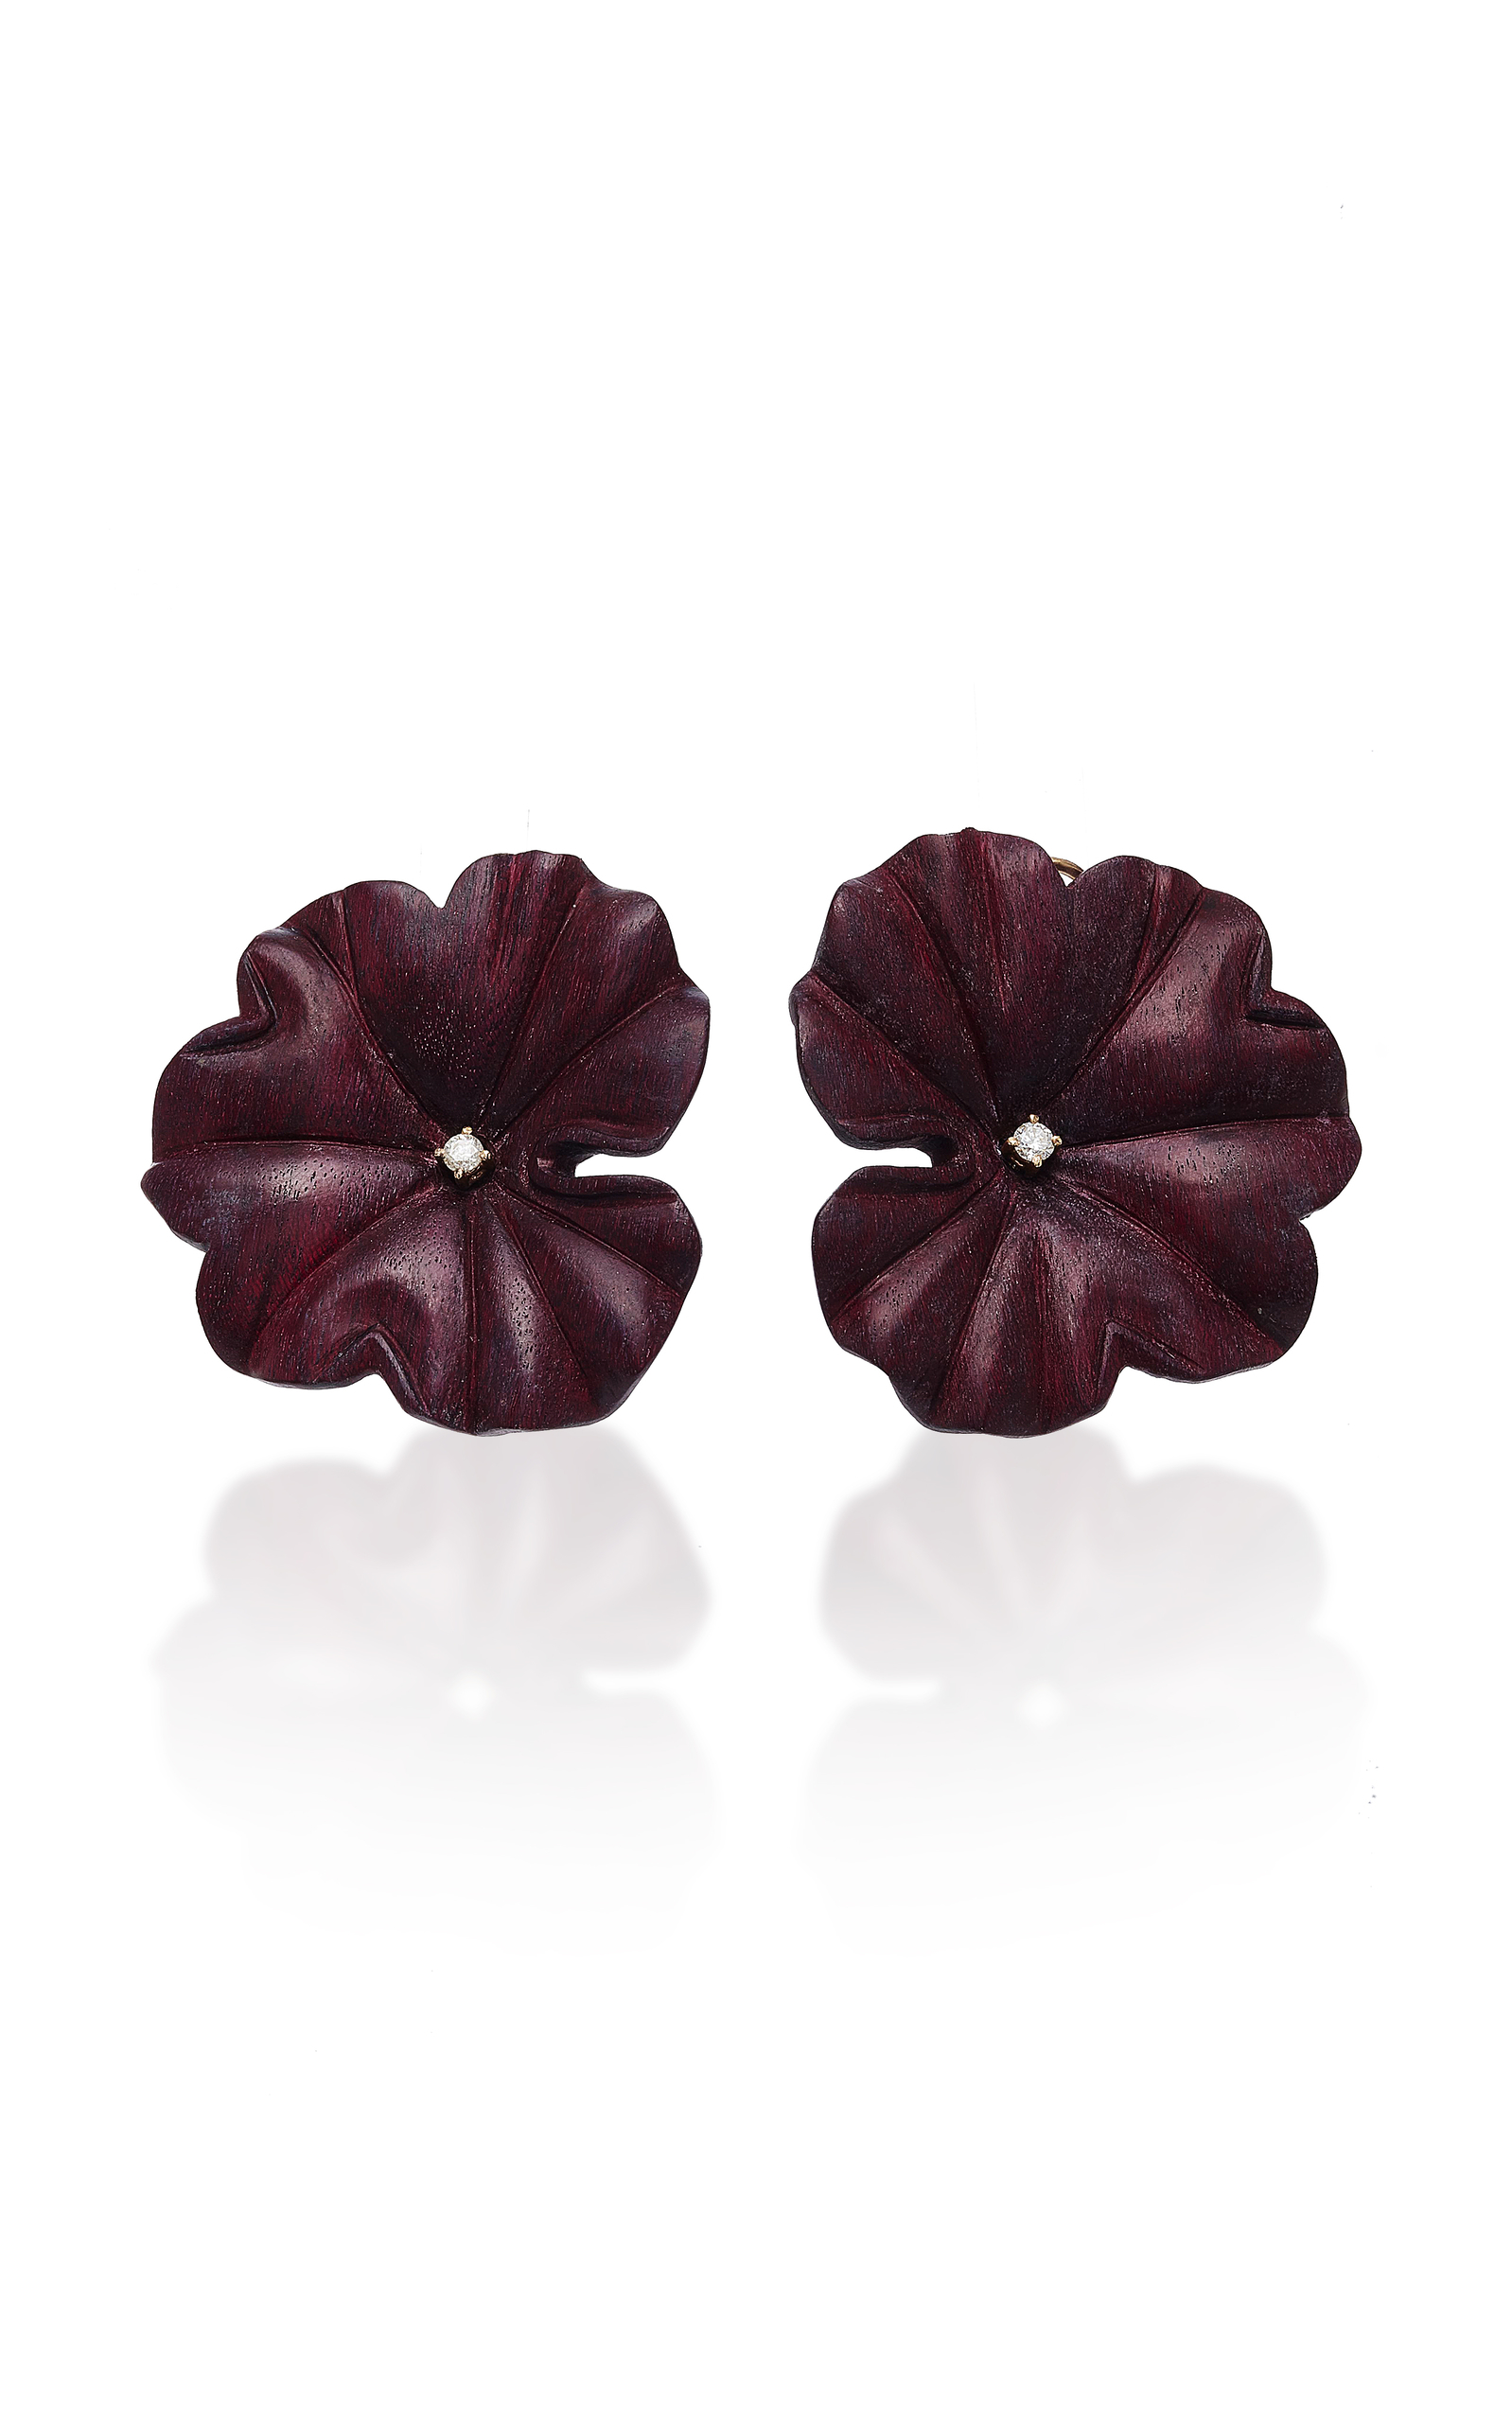 moda purple operandi large earrings by amethyst sabbadini loading flower